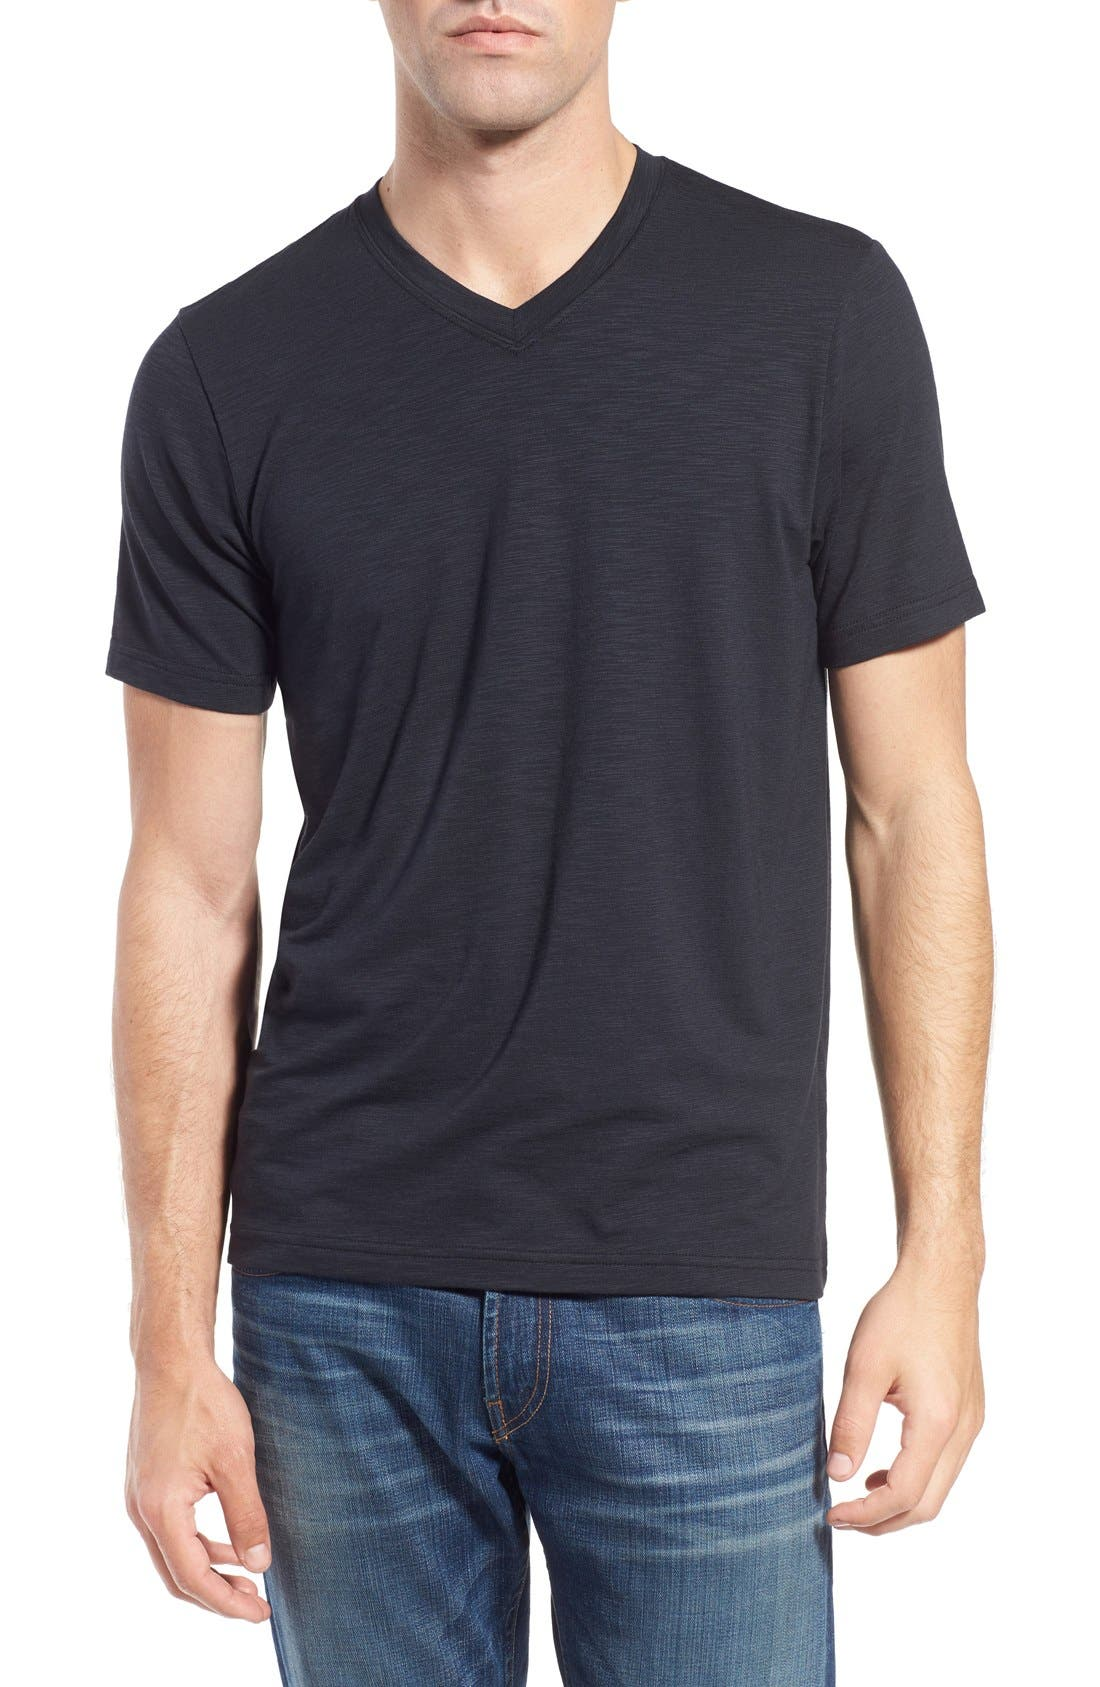 Travis Mathew 'Trumbull' Trim Fit Slubbed T-Shirt